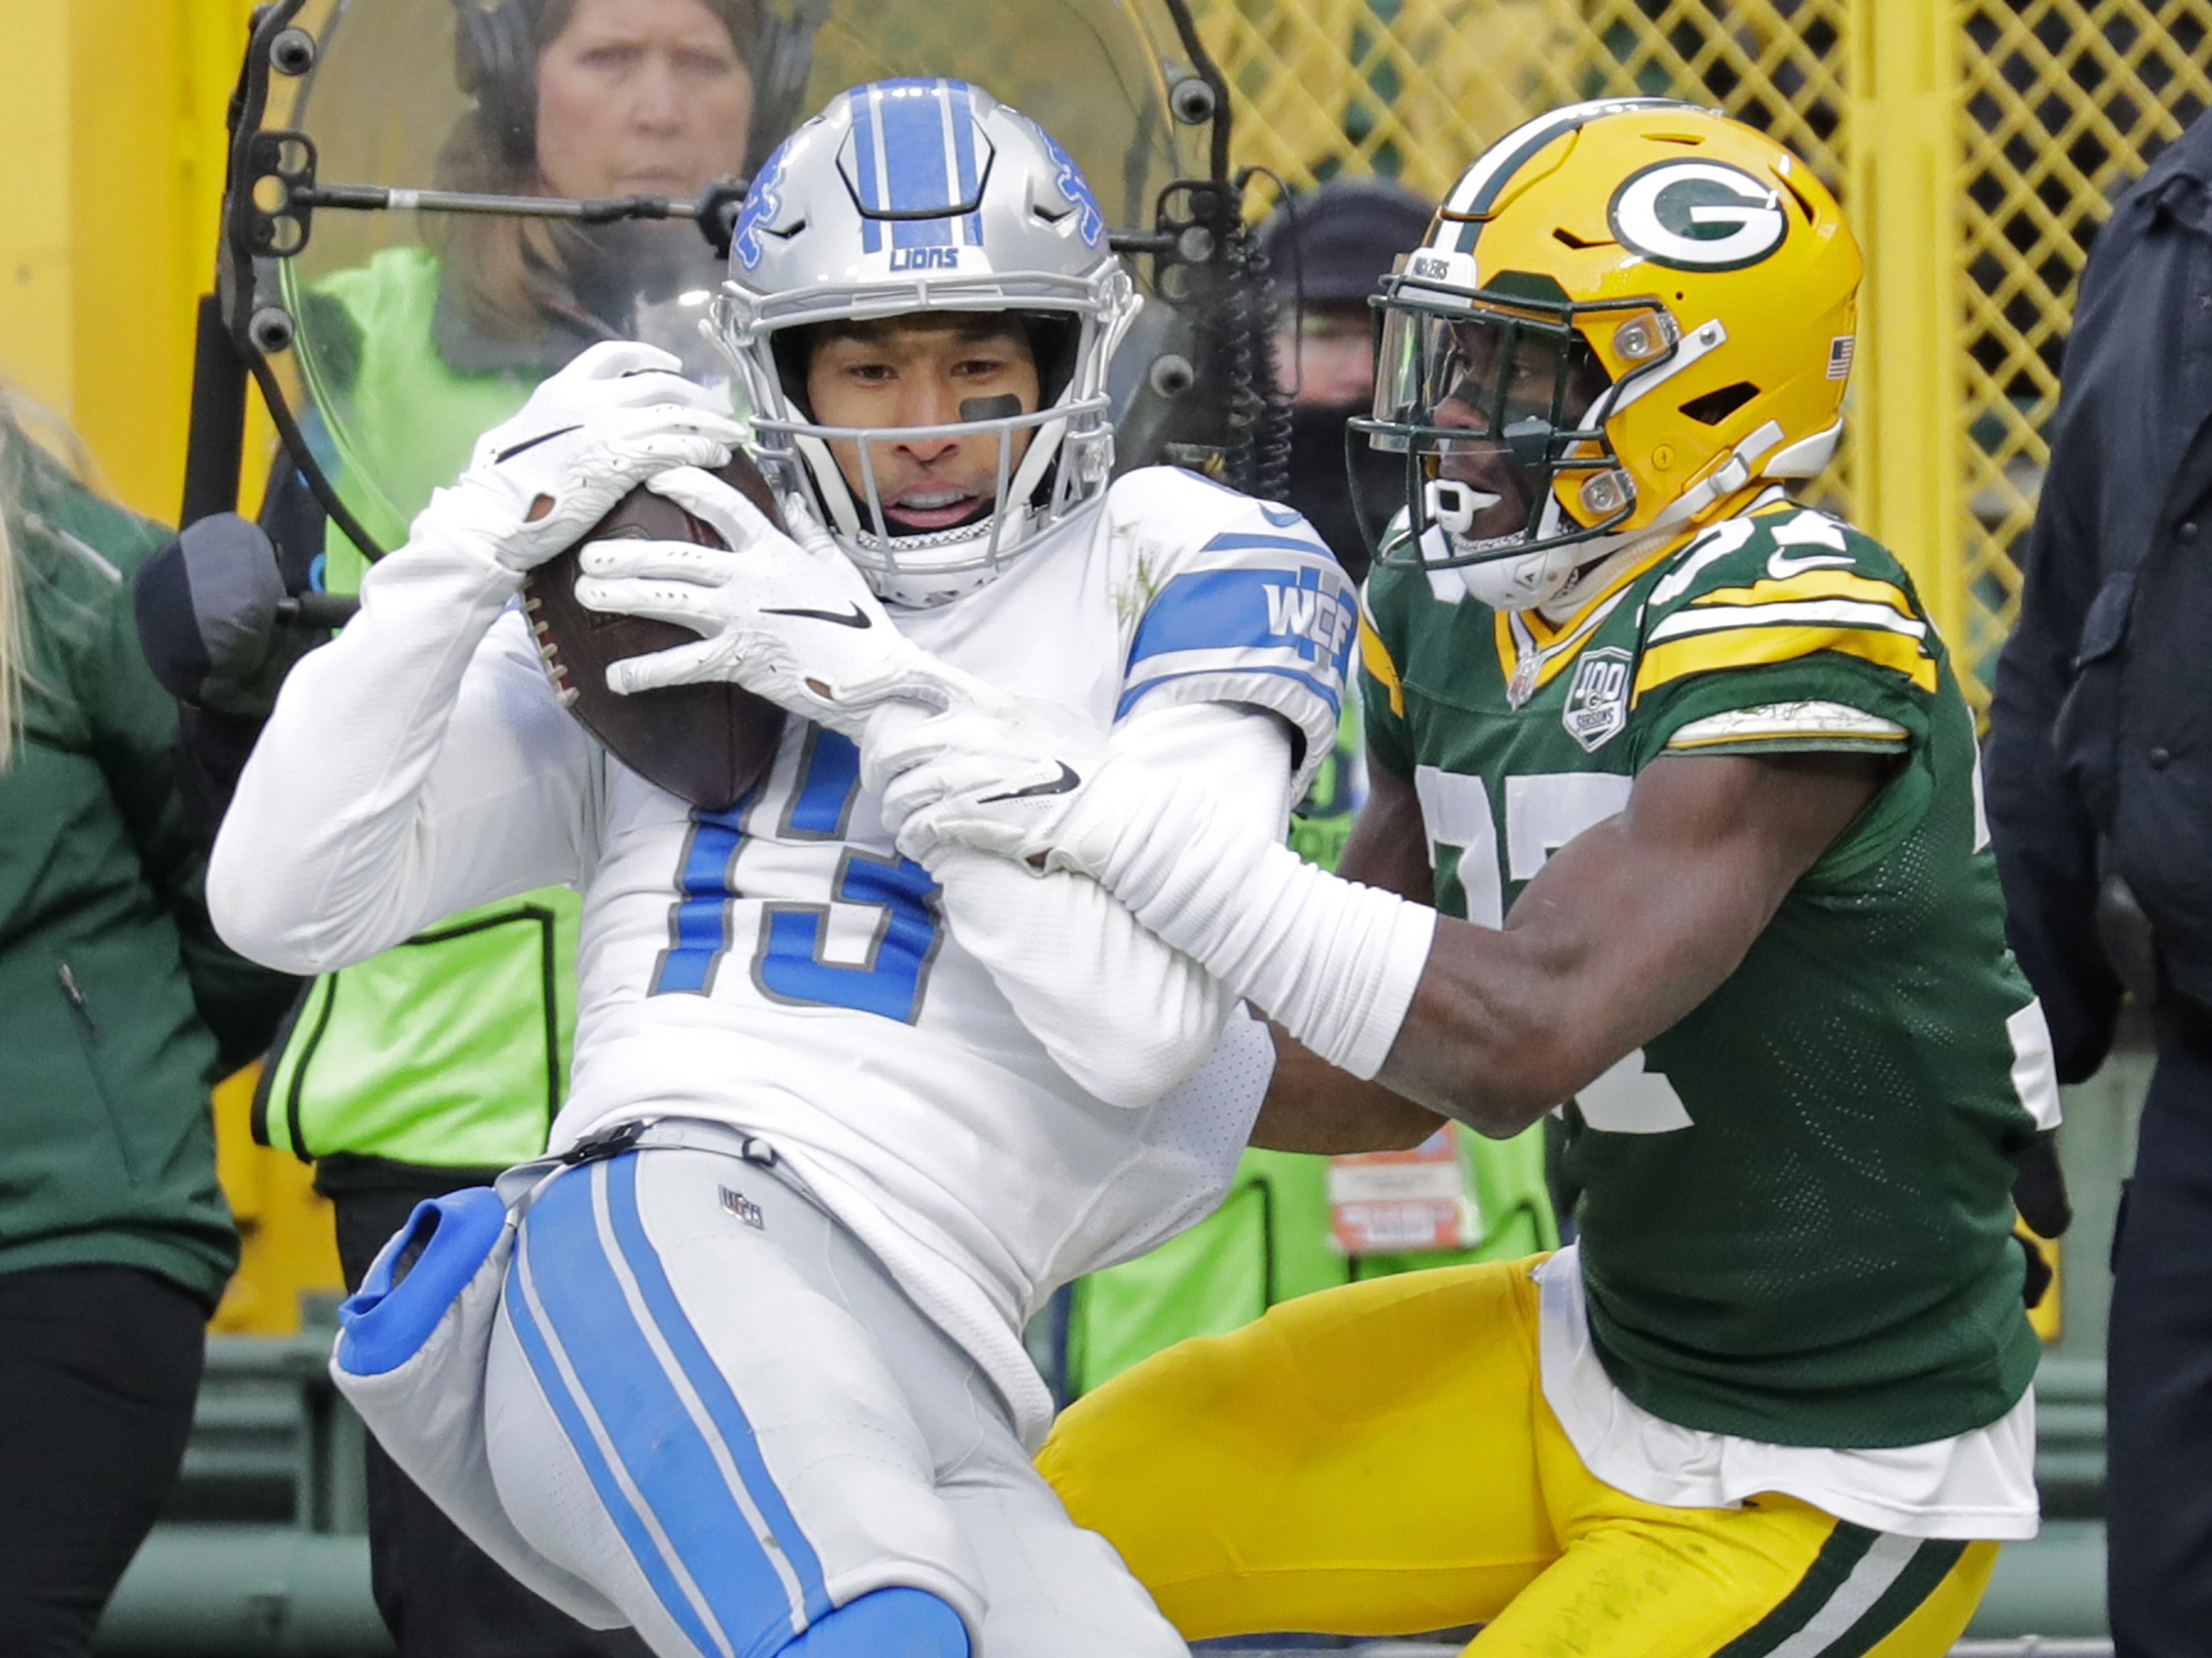 Detroit Lions wide receiver T.J. Jones (13) pulls down a touchdown against Green Bay Packers cornerback Josh Jackson (37) in the fourth quarter Sunday, December 30, 2018, at Lambeau Field in Green Bay, Wis.  Dan Powers/USA TODAY NETWORK-Wisconsin